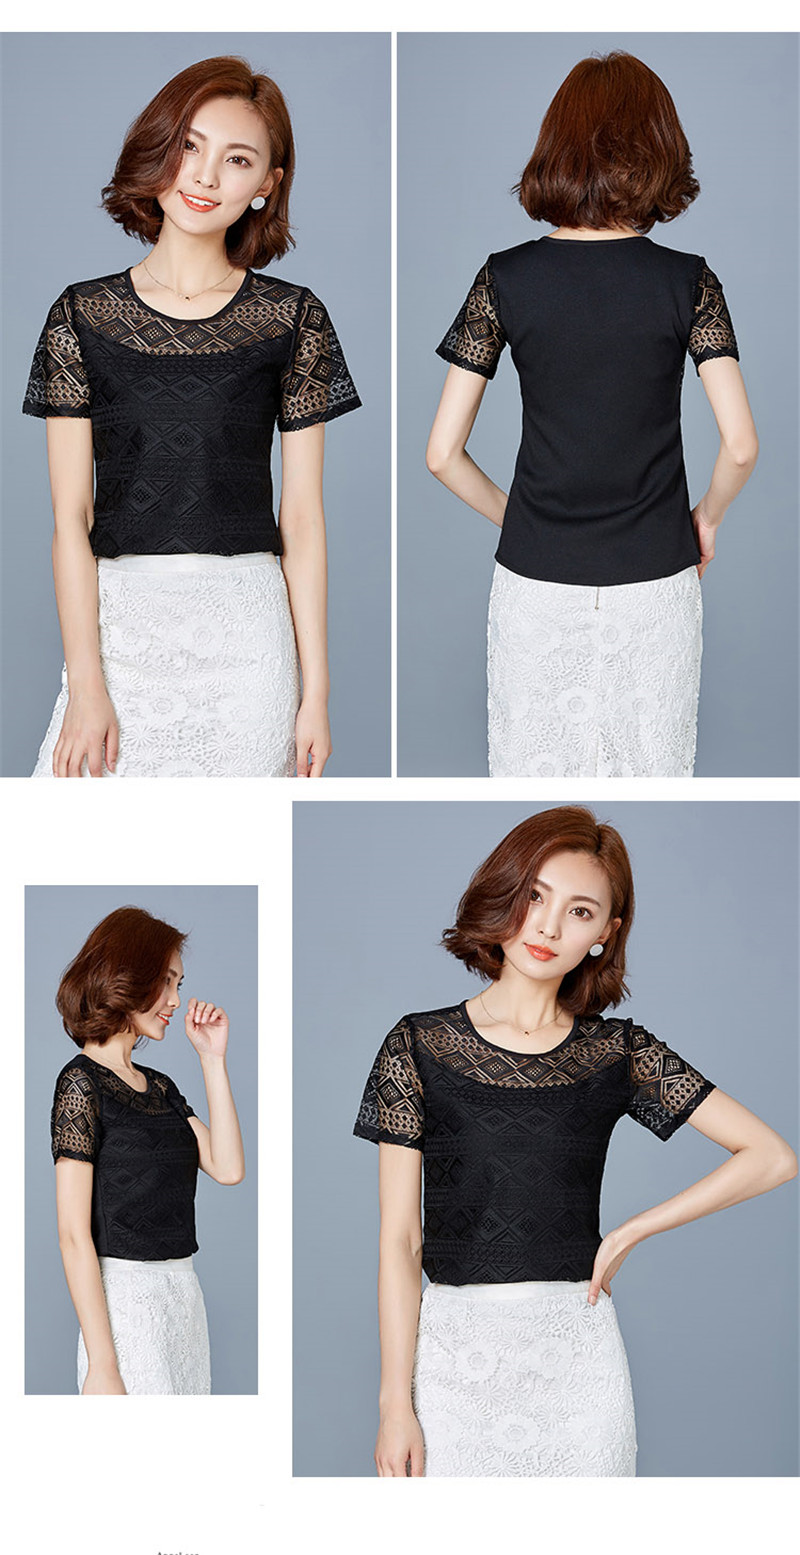 HTB1lyoEPpXXXXaDapXXq6xXFXXXO - New women tops lace chiffon blouse korean office female clothing